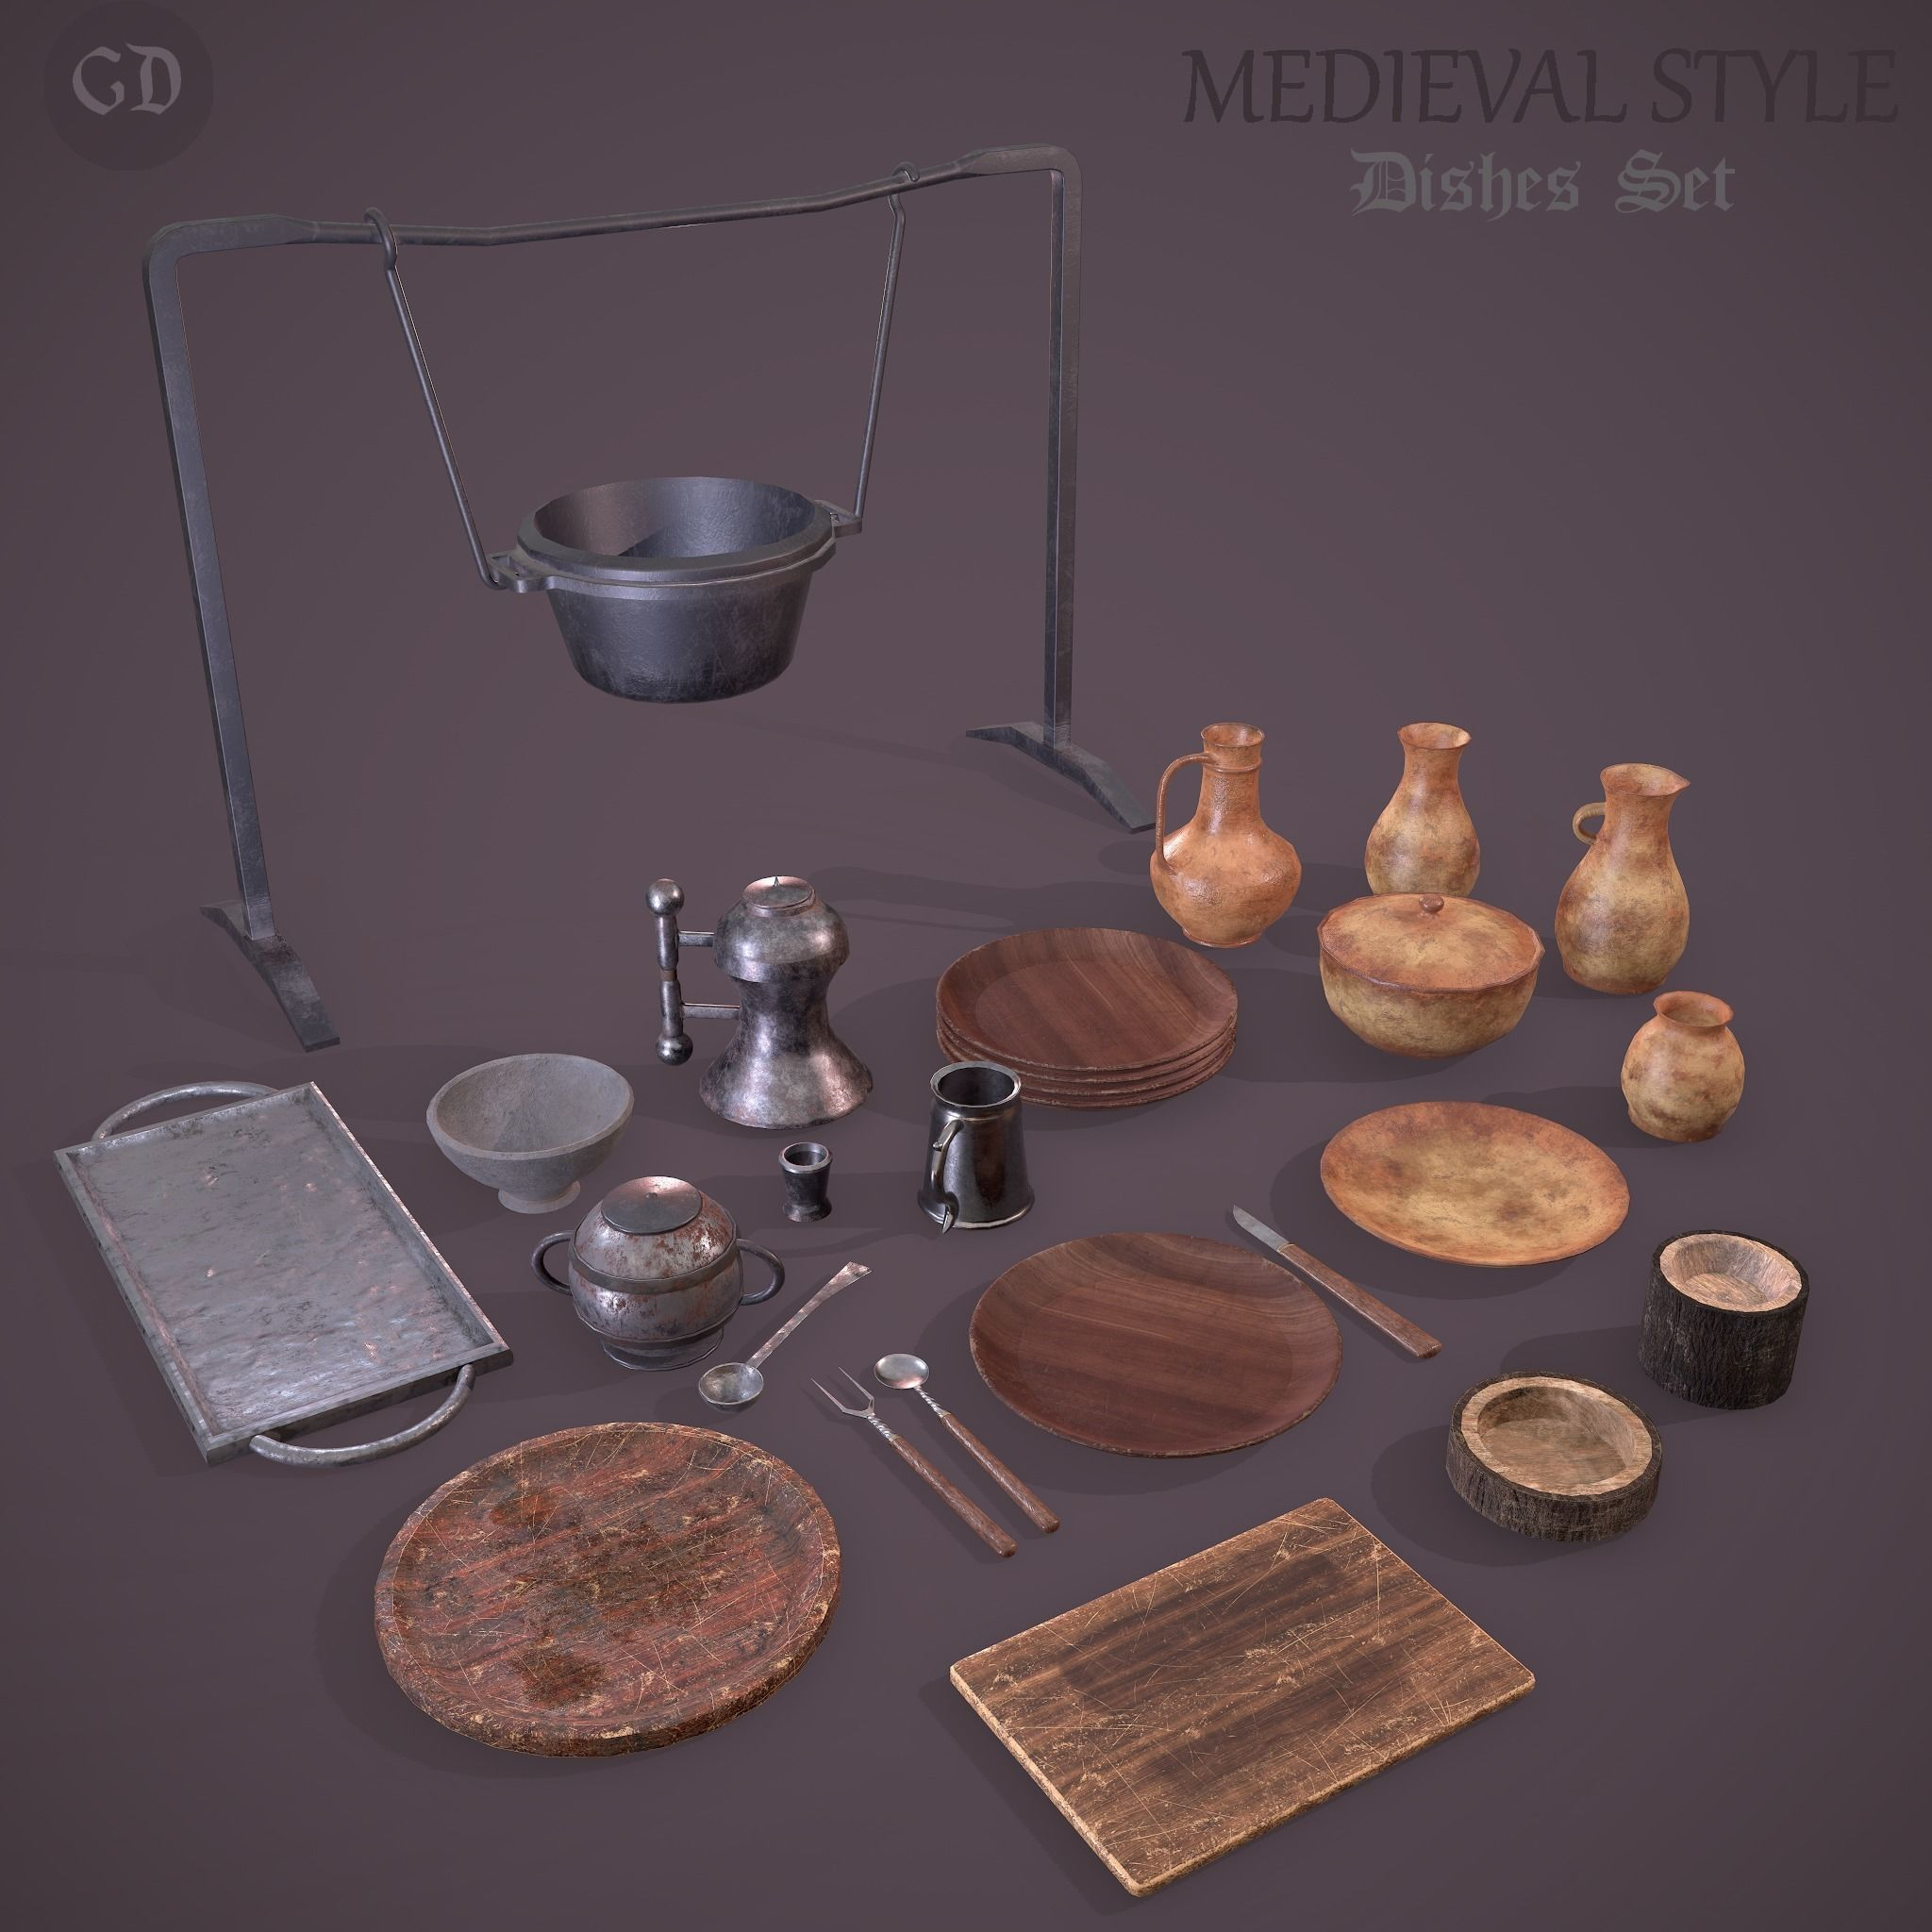 Medieval Dishes